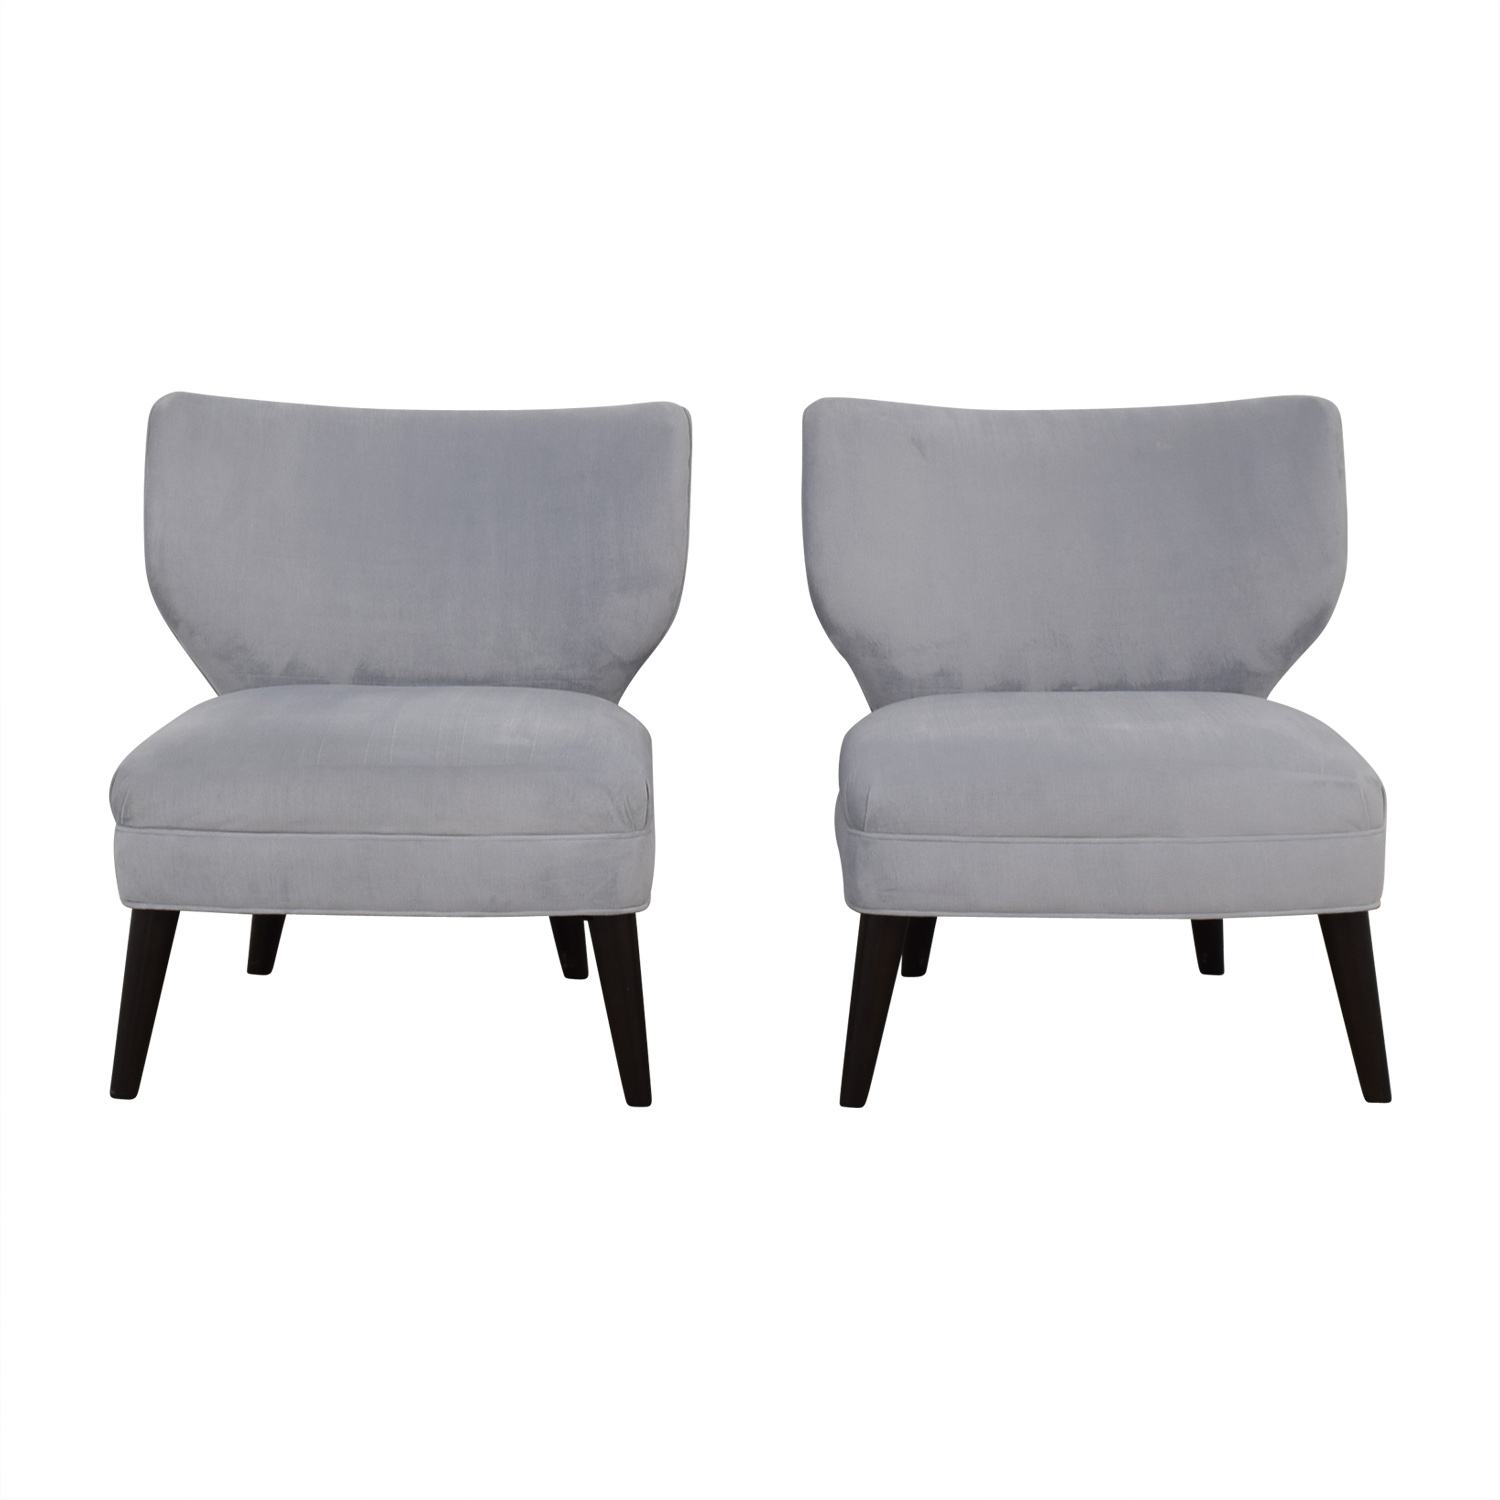 Charmant Buy Ethan Allen Blue Gray Velvet Accent Chairs Ethan Allen